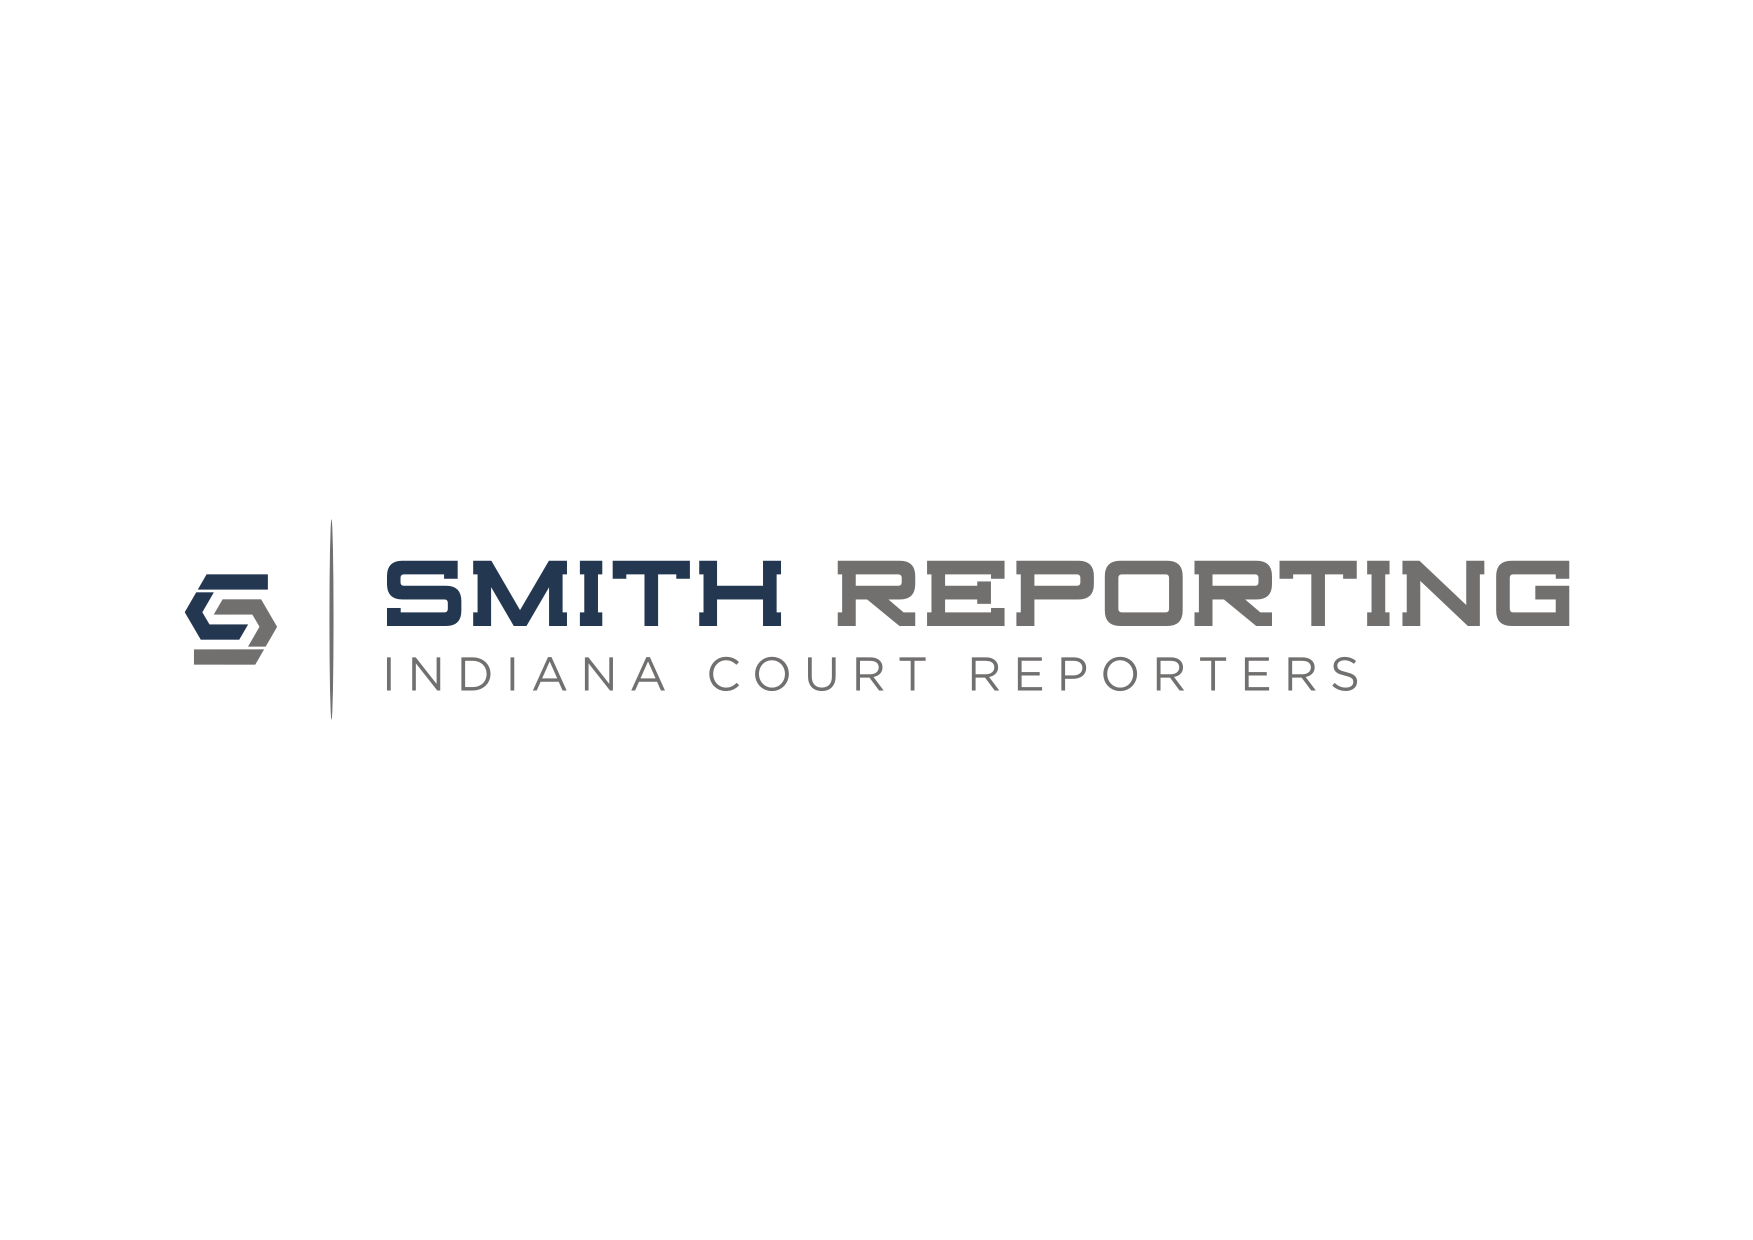 Help Smith Reporting update our logo!